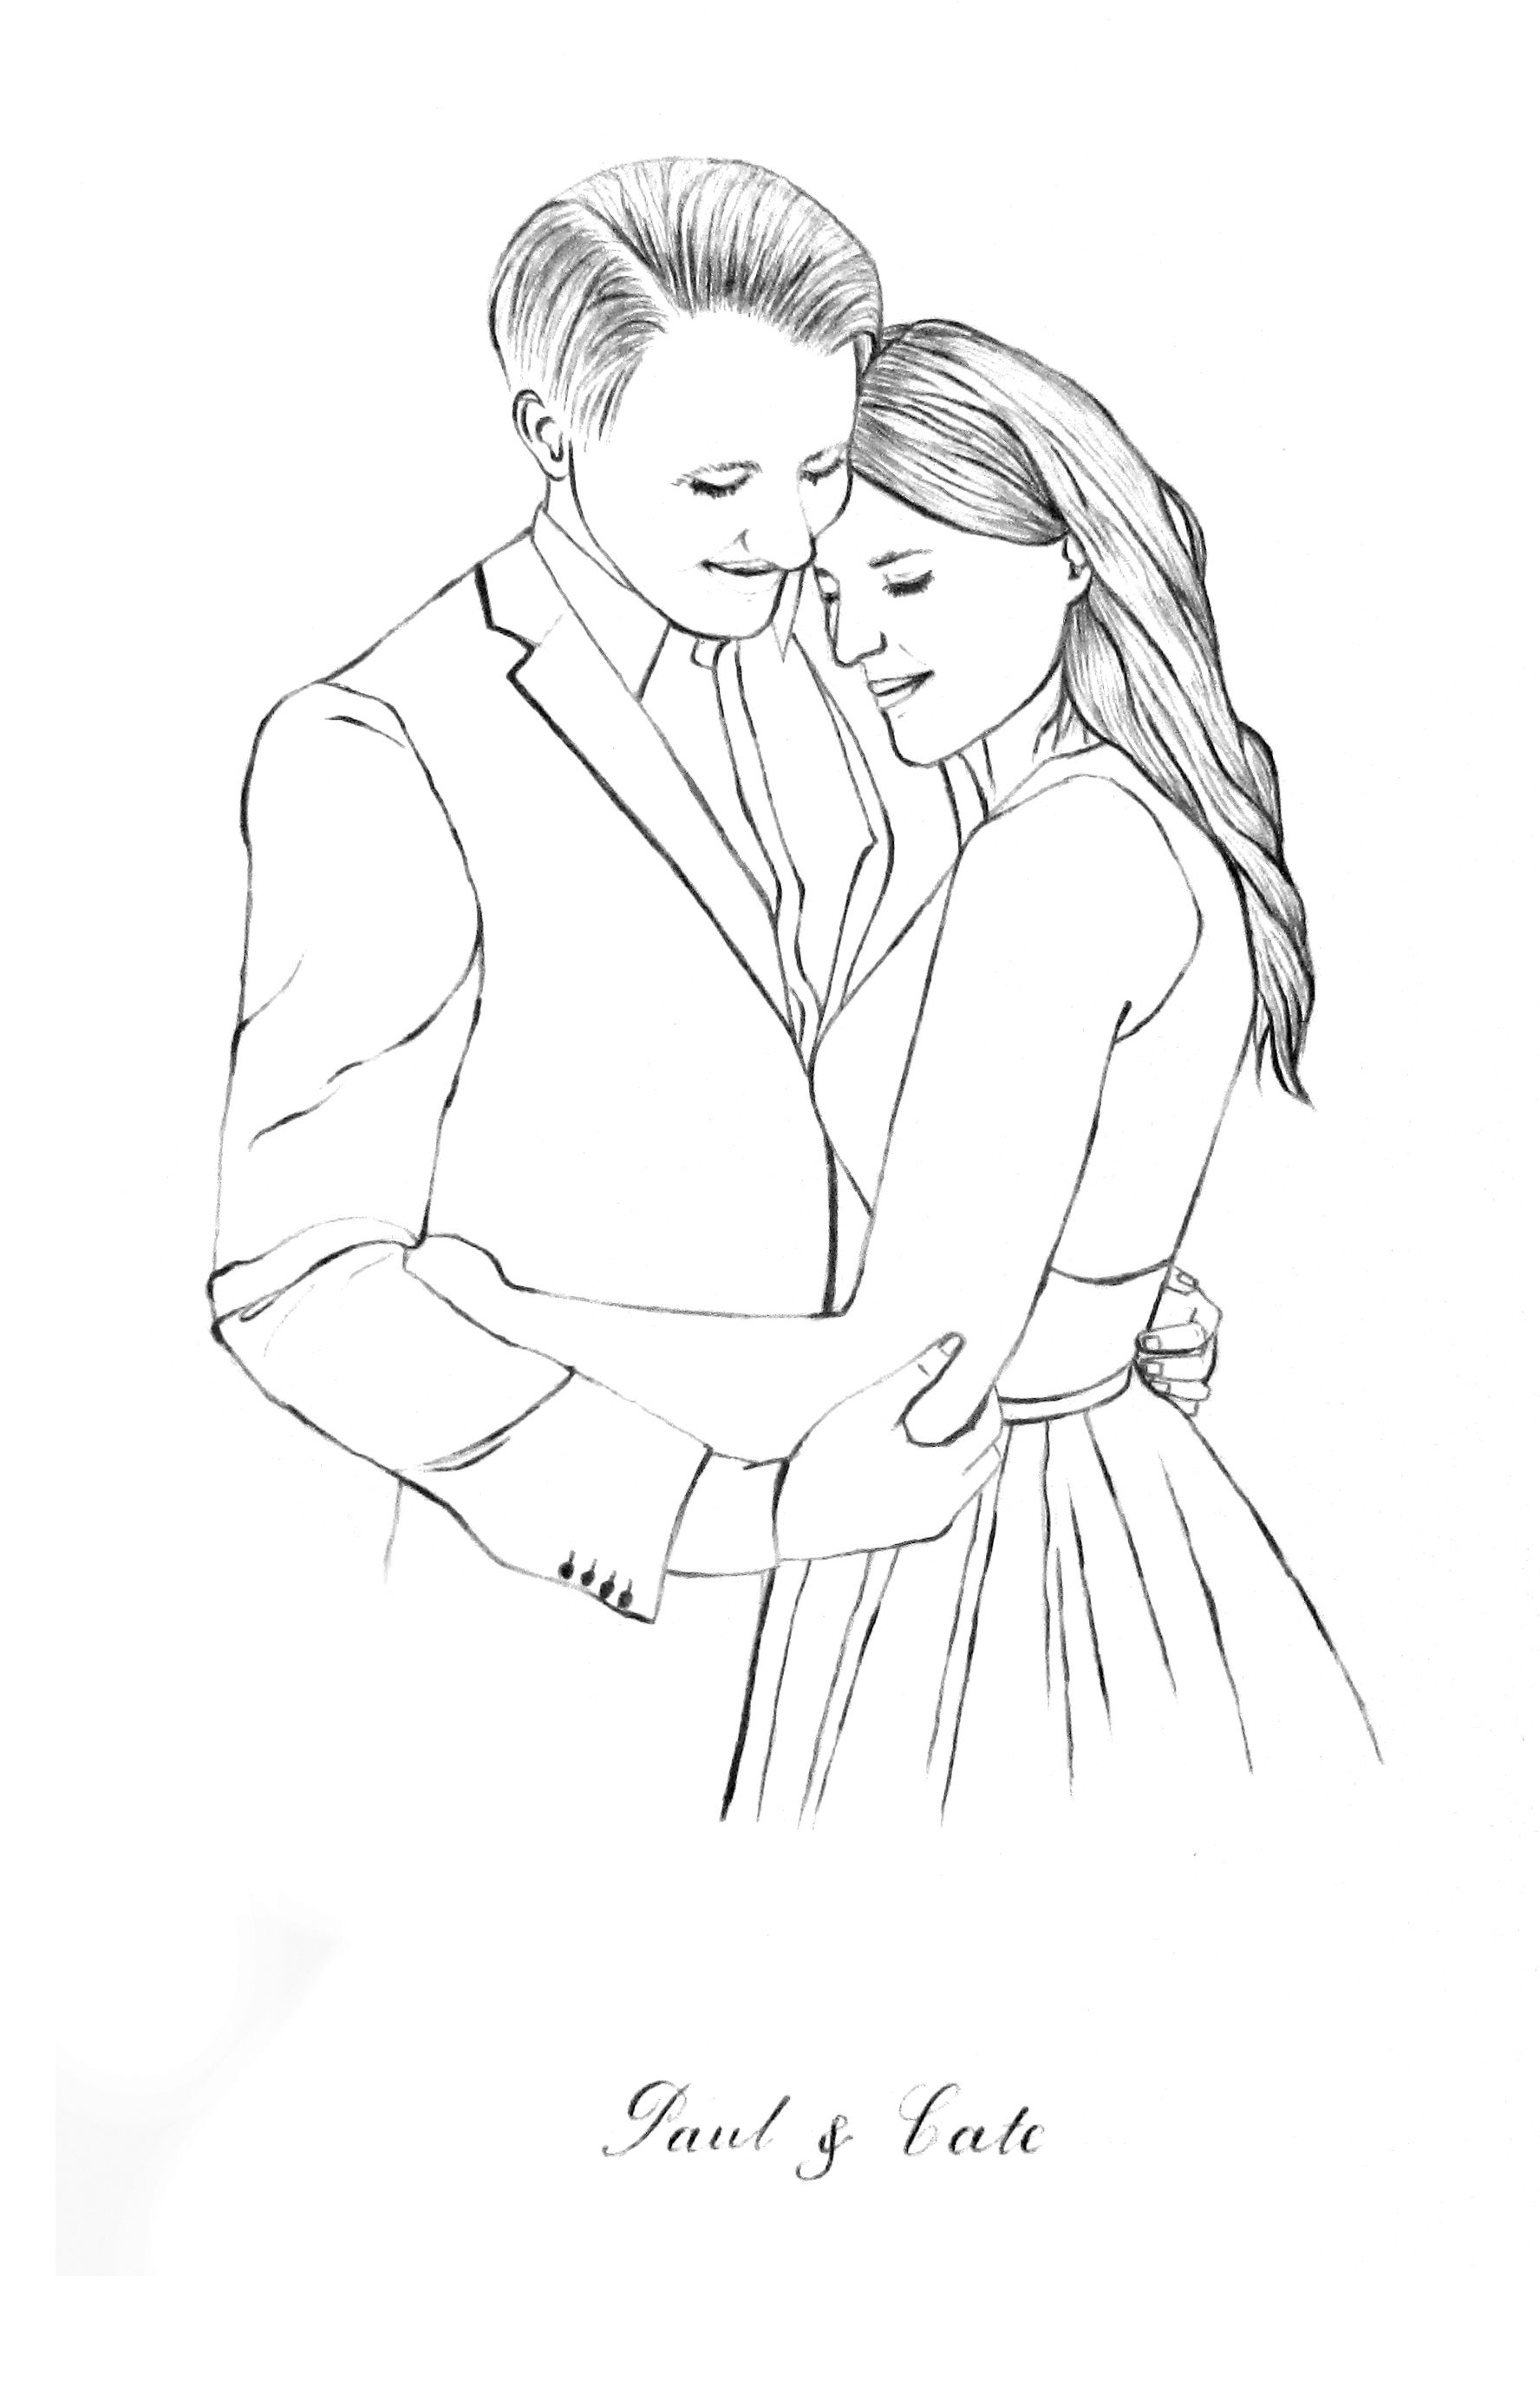 how to draw a wedding couple wedding couple drawing at getdrawings free download draw how to couple a wedding